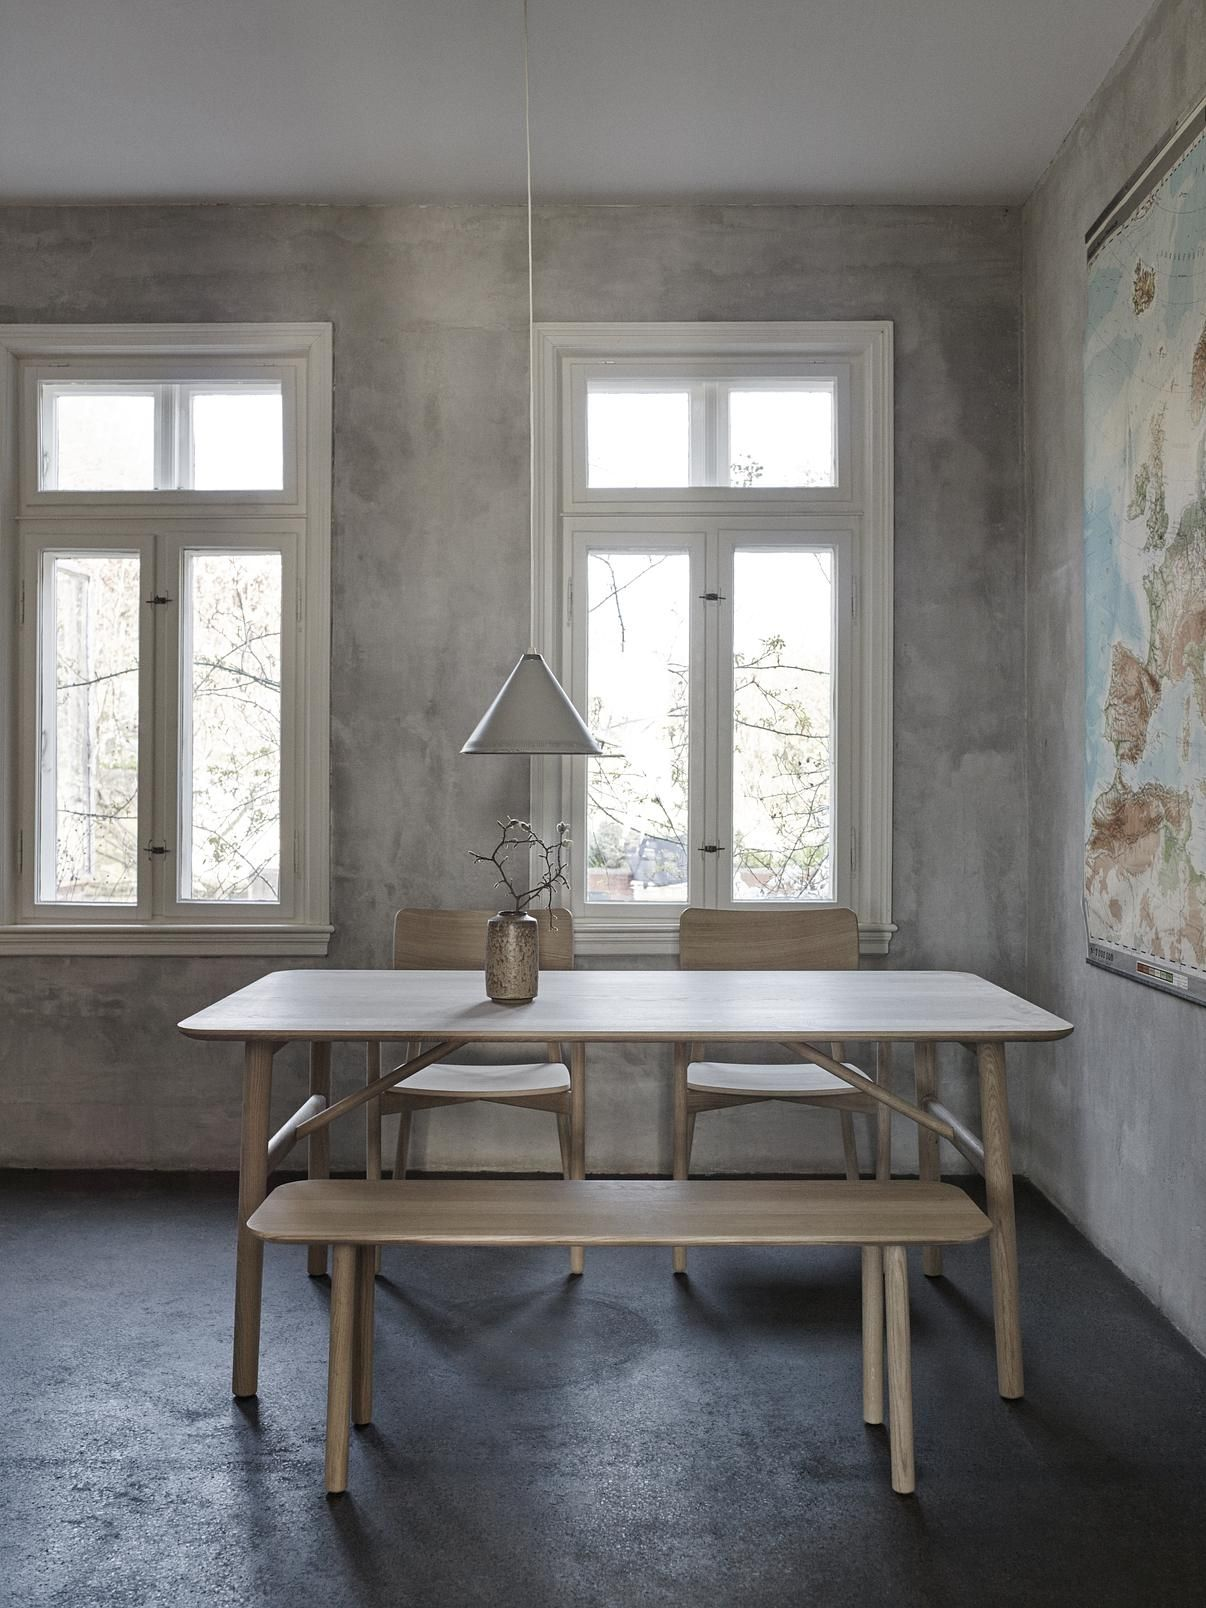 The Hven Table is crafted from solid, untreated oak with a beautiful grain pattern and a superb durability.  A minimalistic design, the table is characterized by its round legs and corners with subtle details along the tabletop and legs.  From Skagerak.  #kitchendecor #diningtabledecor#homedesign #interiordecor #interiorstyle #interiorinspo #interiorinspiration #instahome